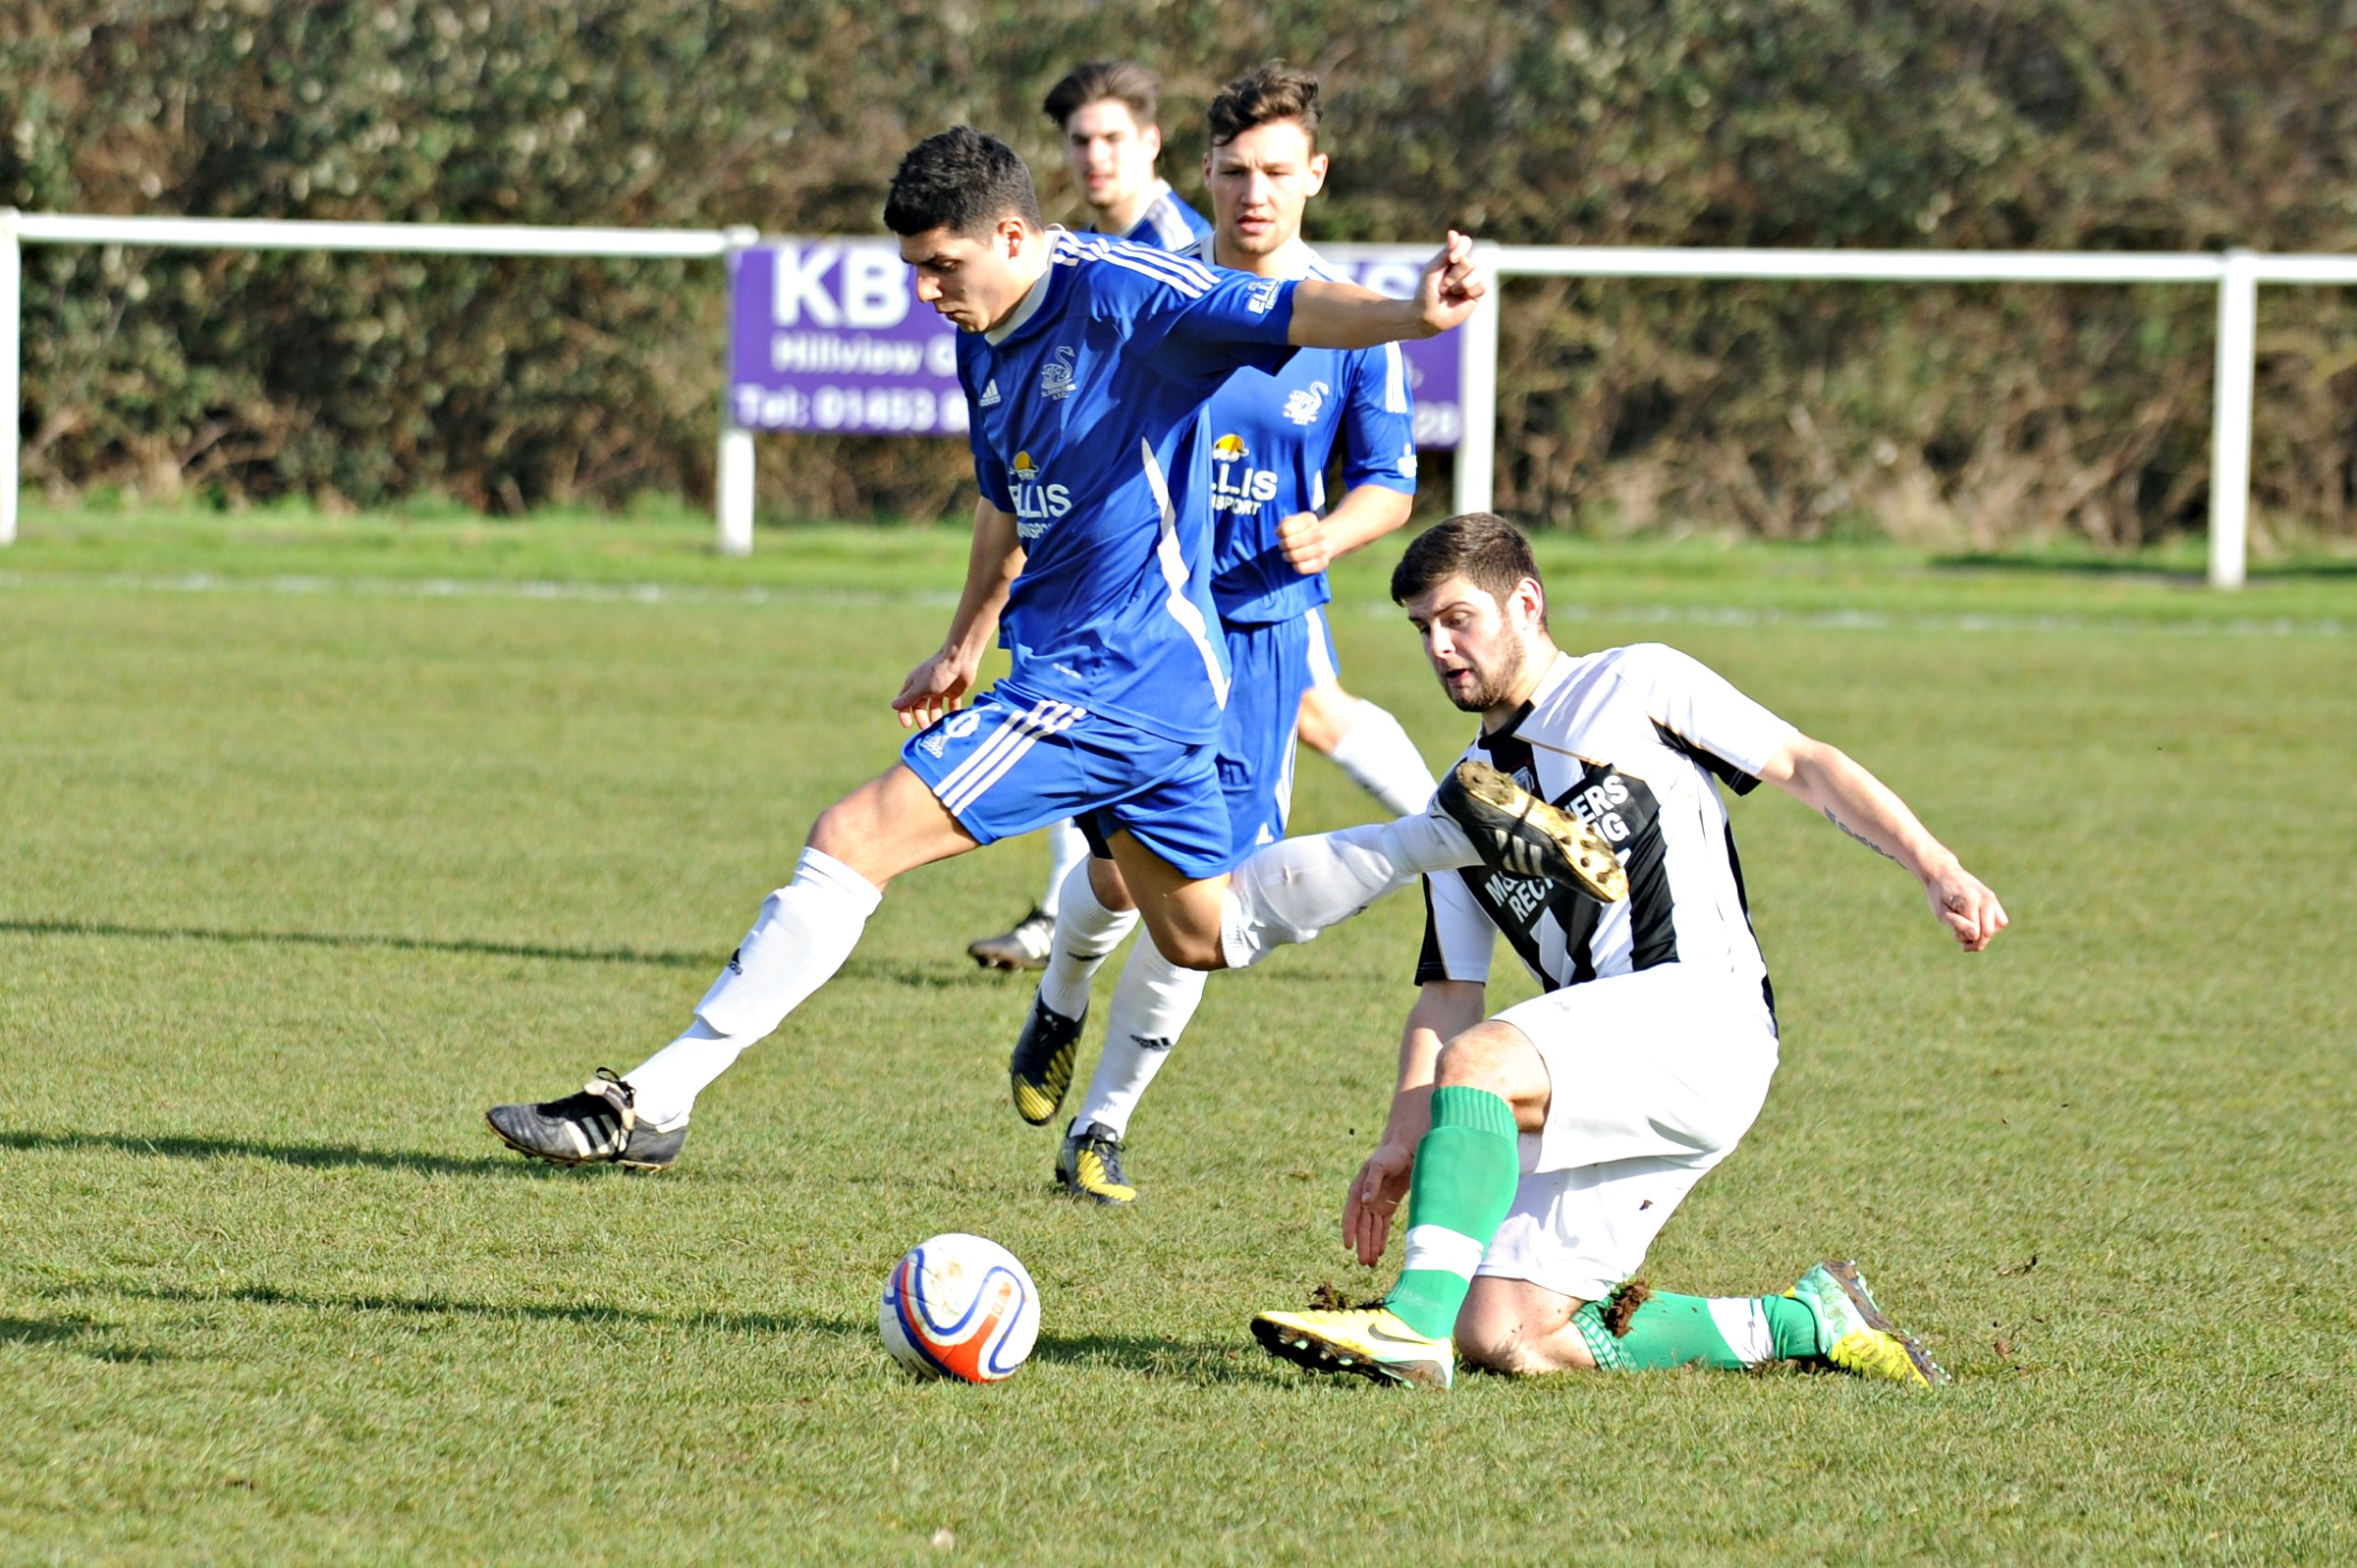 Jack Twyman scored Slimbridge's second goal